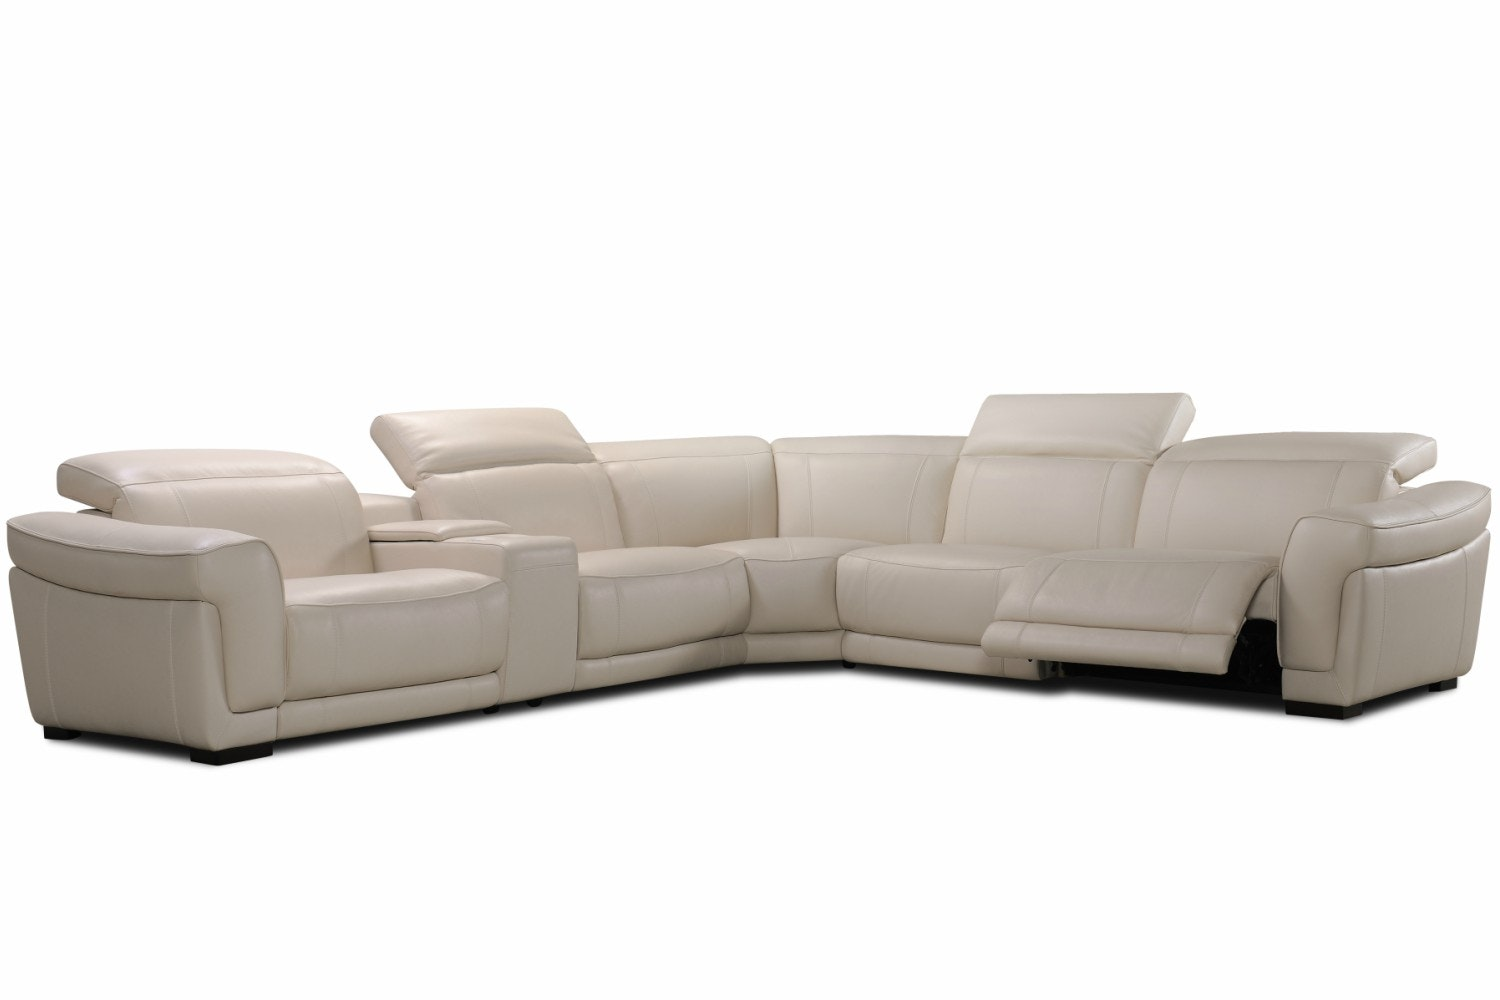 Sonny Corner Sofa | Manual Recliner